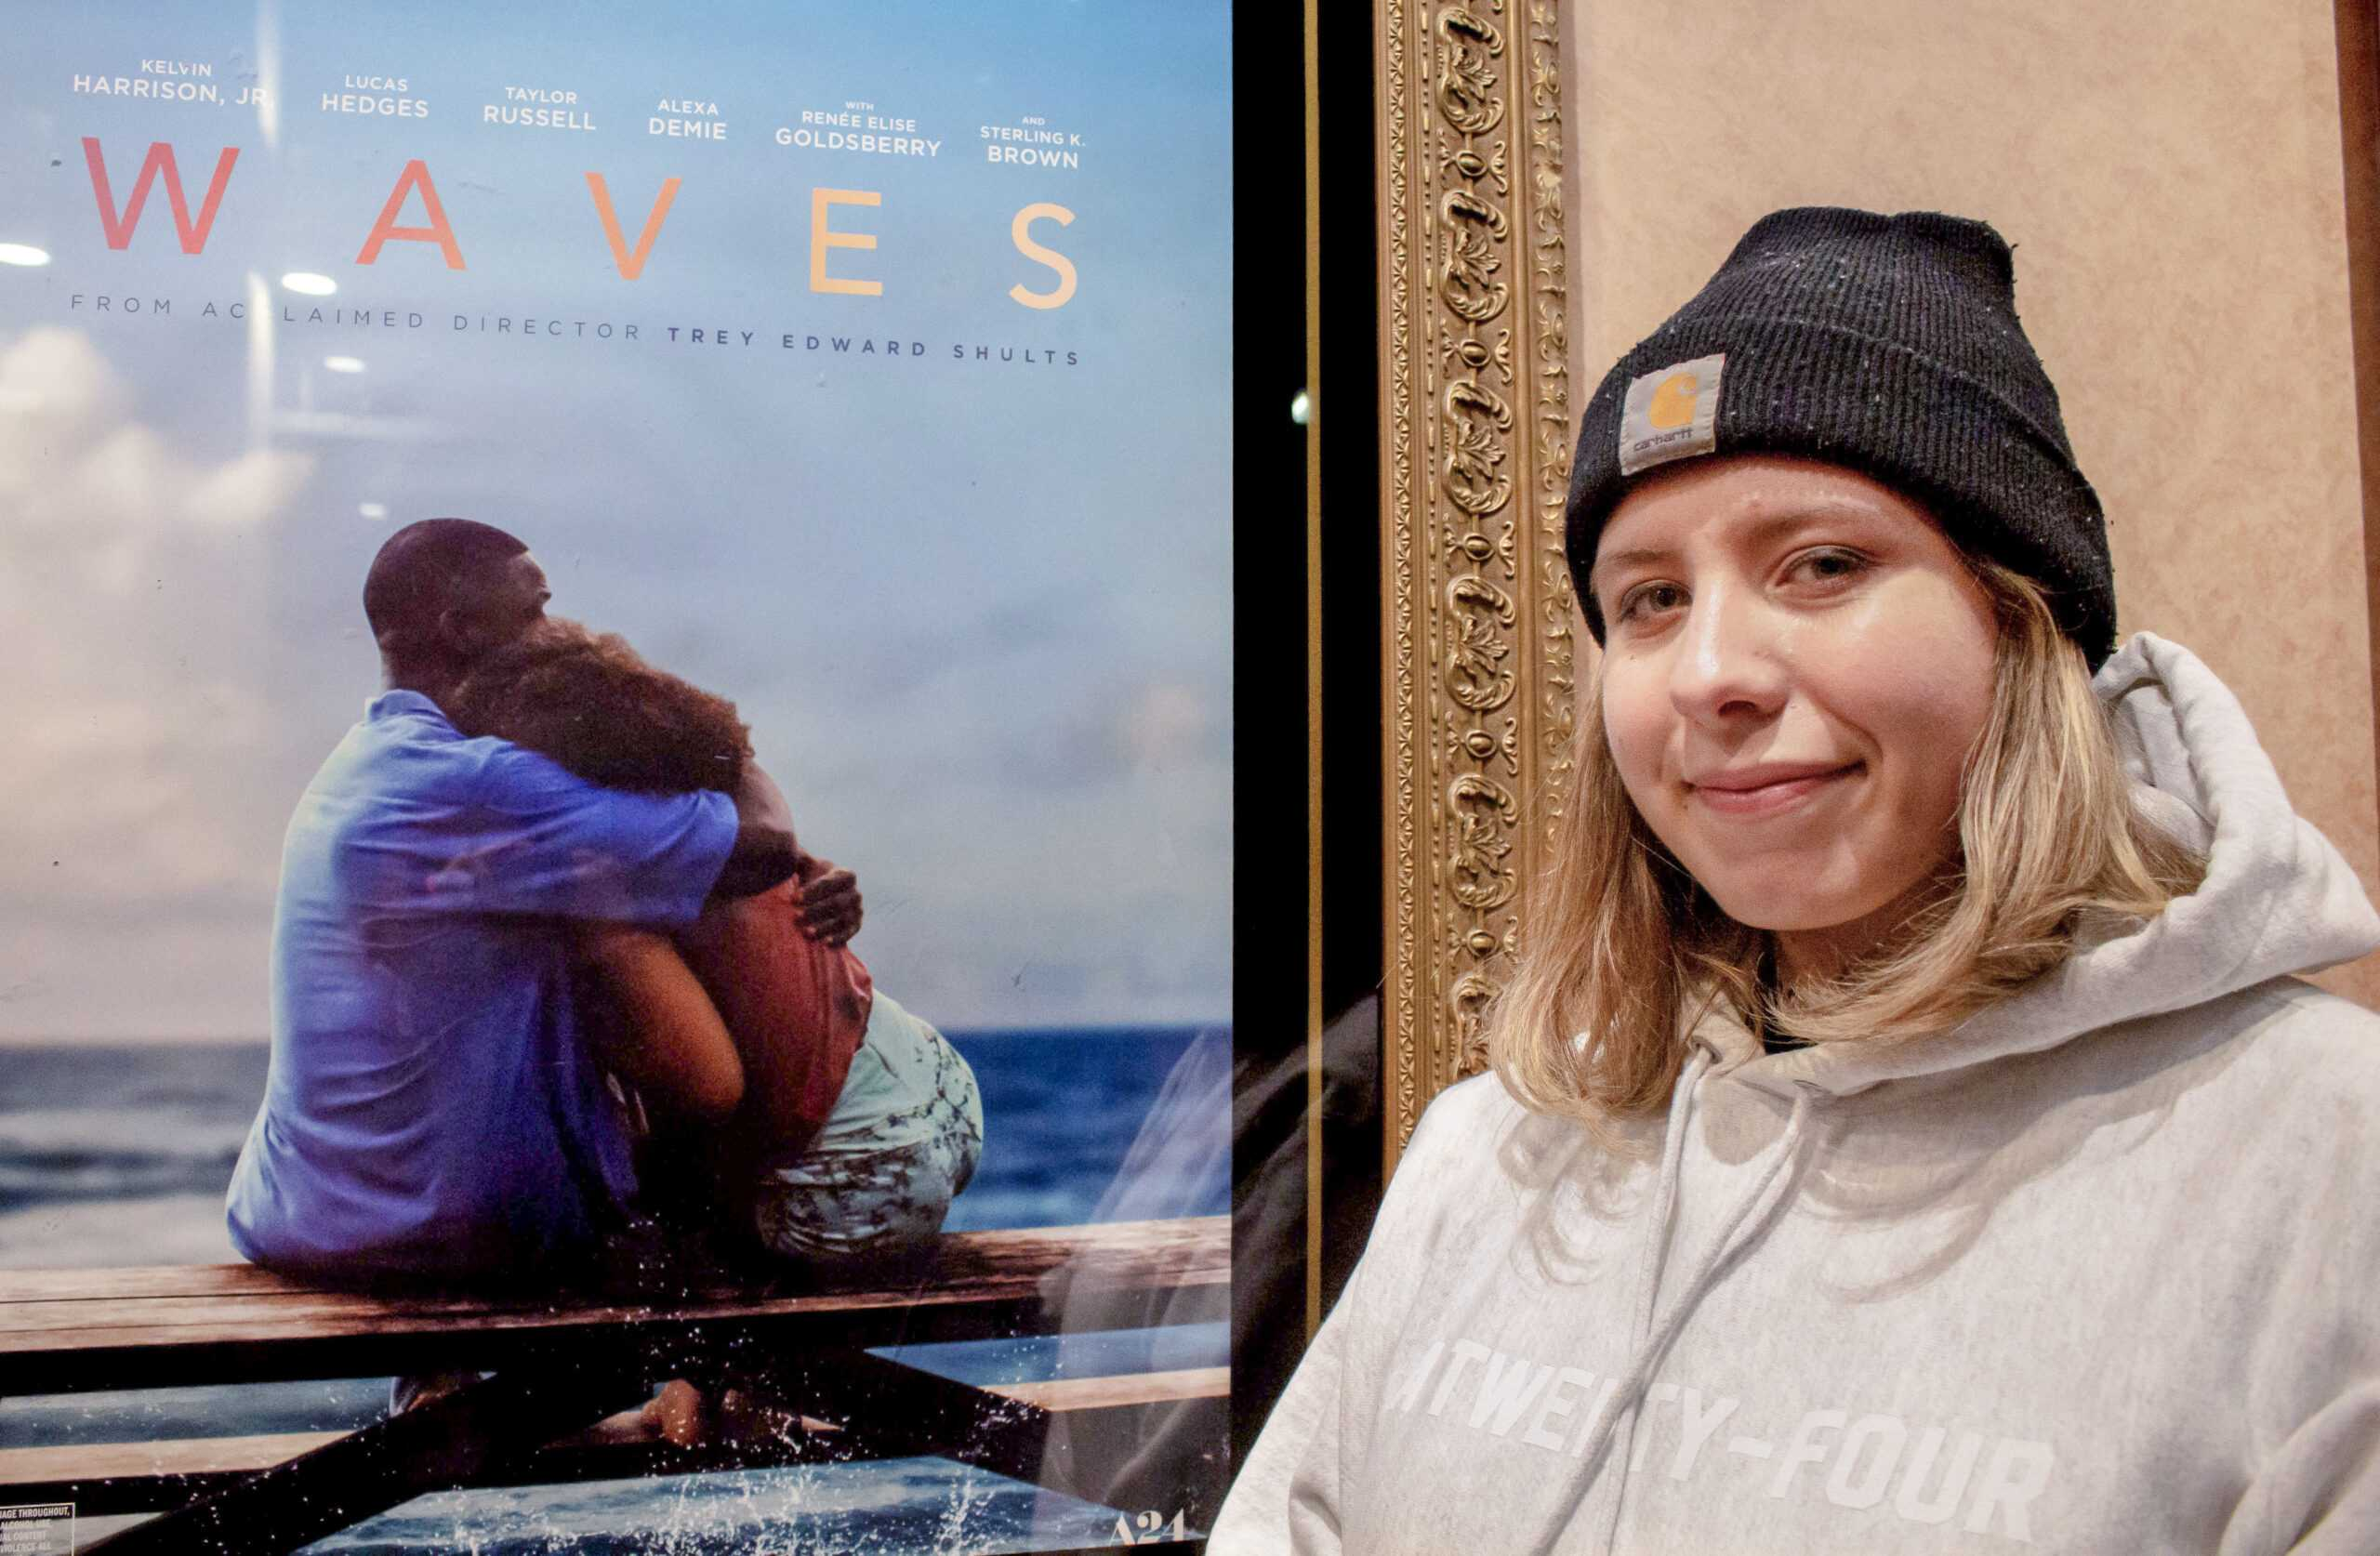 Senior Kat Garelli works as an on-campus A24 intern and organized the 'Waves' screening. Montse Landeros / Beacon Staff